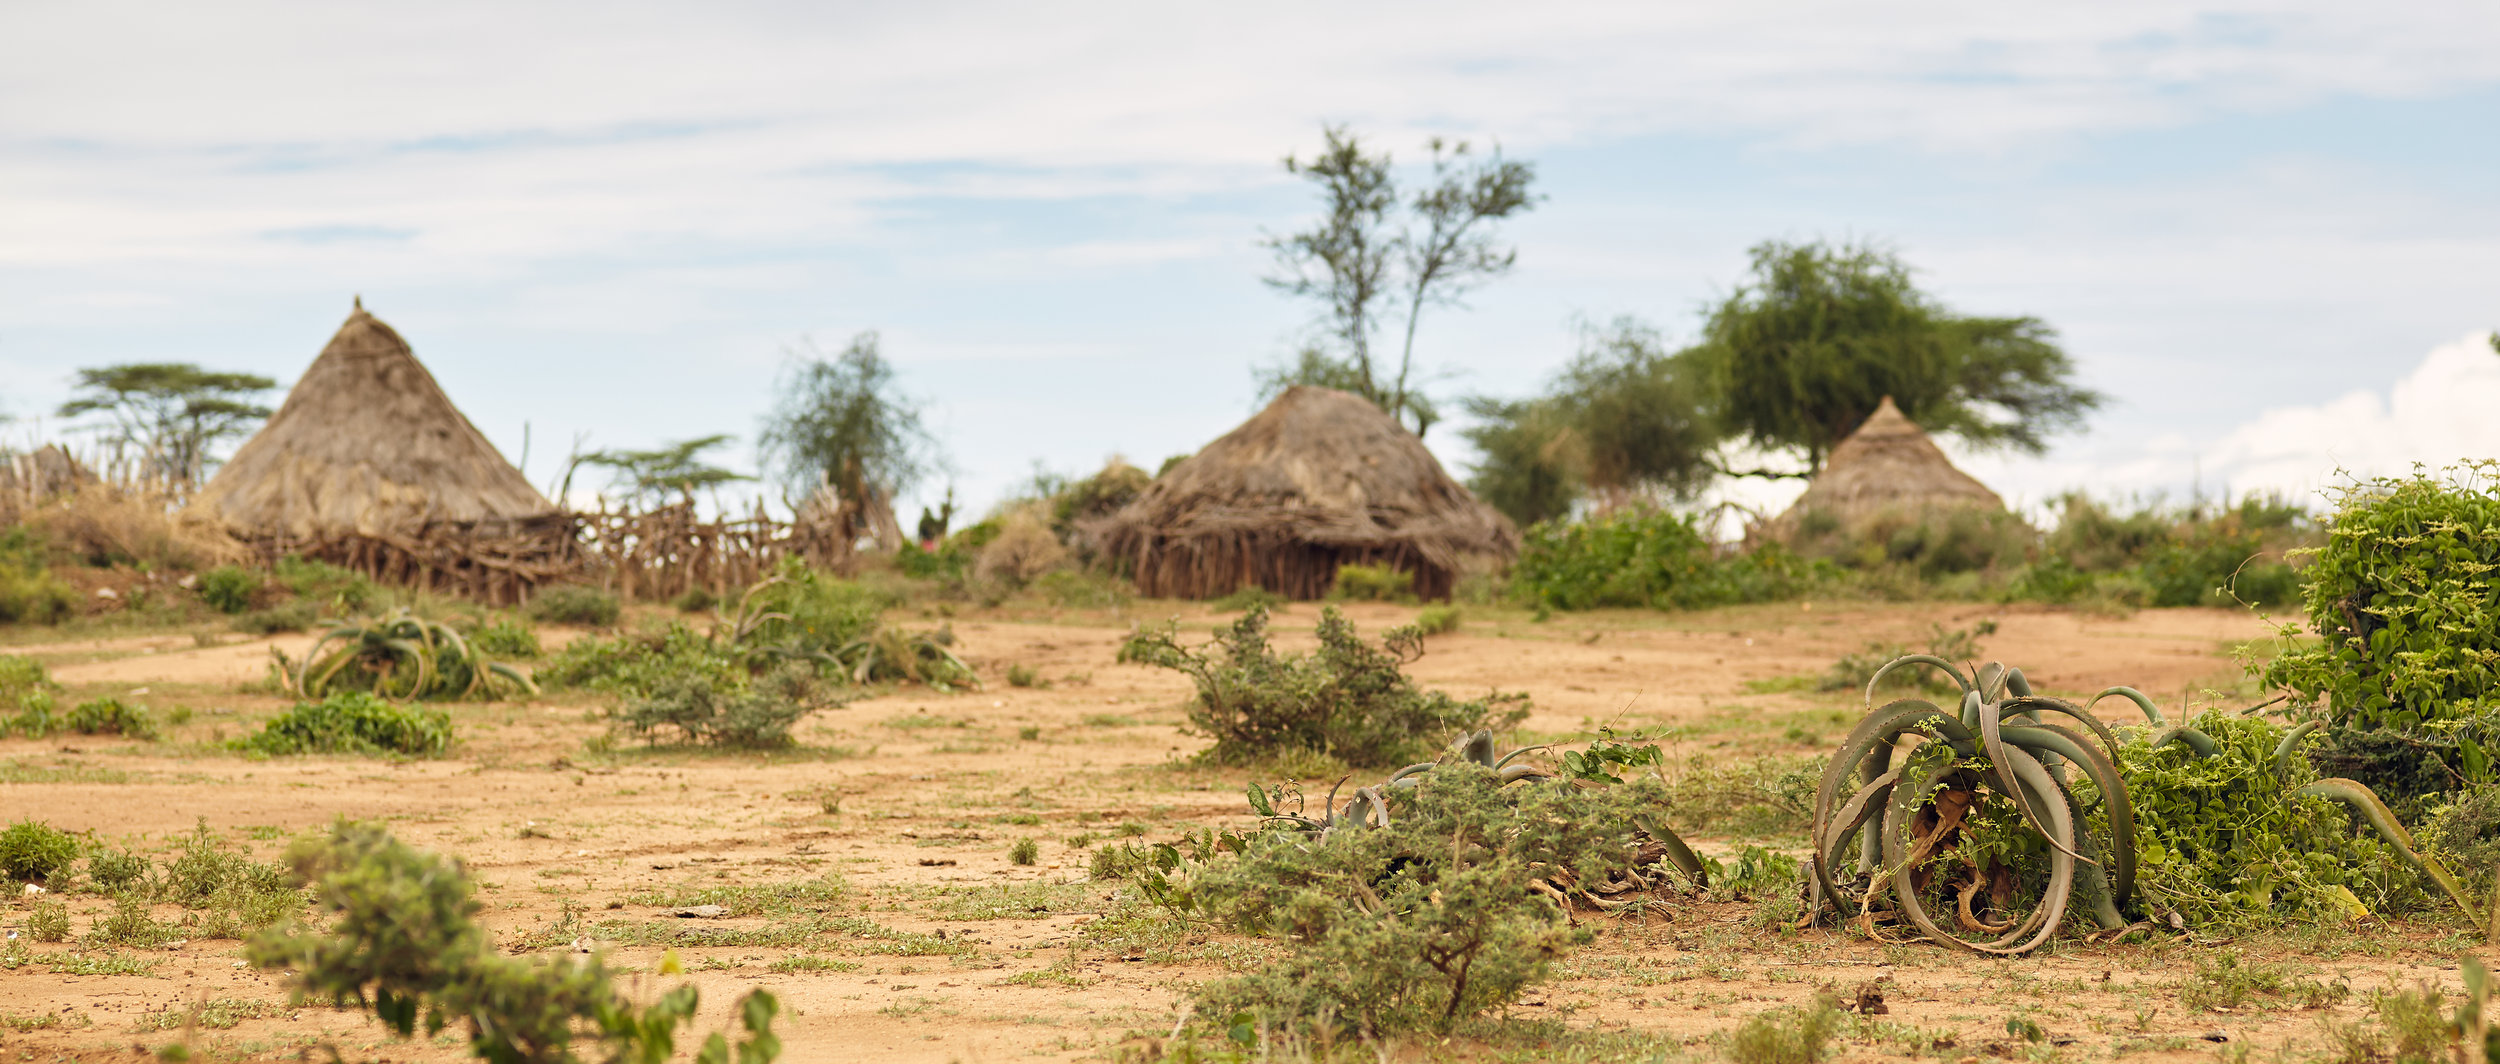 HAMAR VILLAGE IN LOWER OMO VALLEY, ETHIOPIA